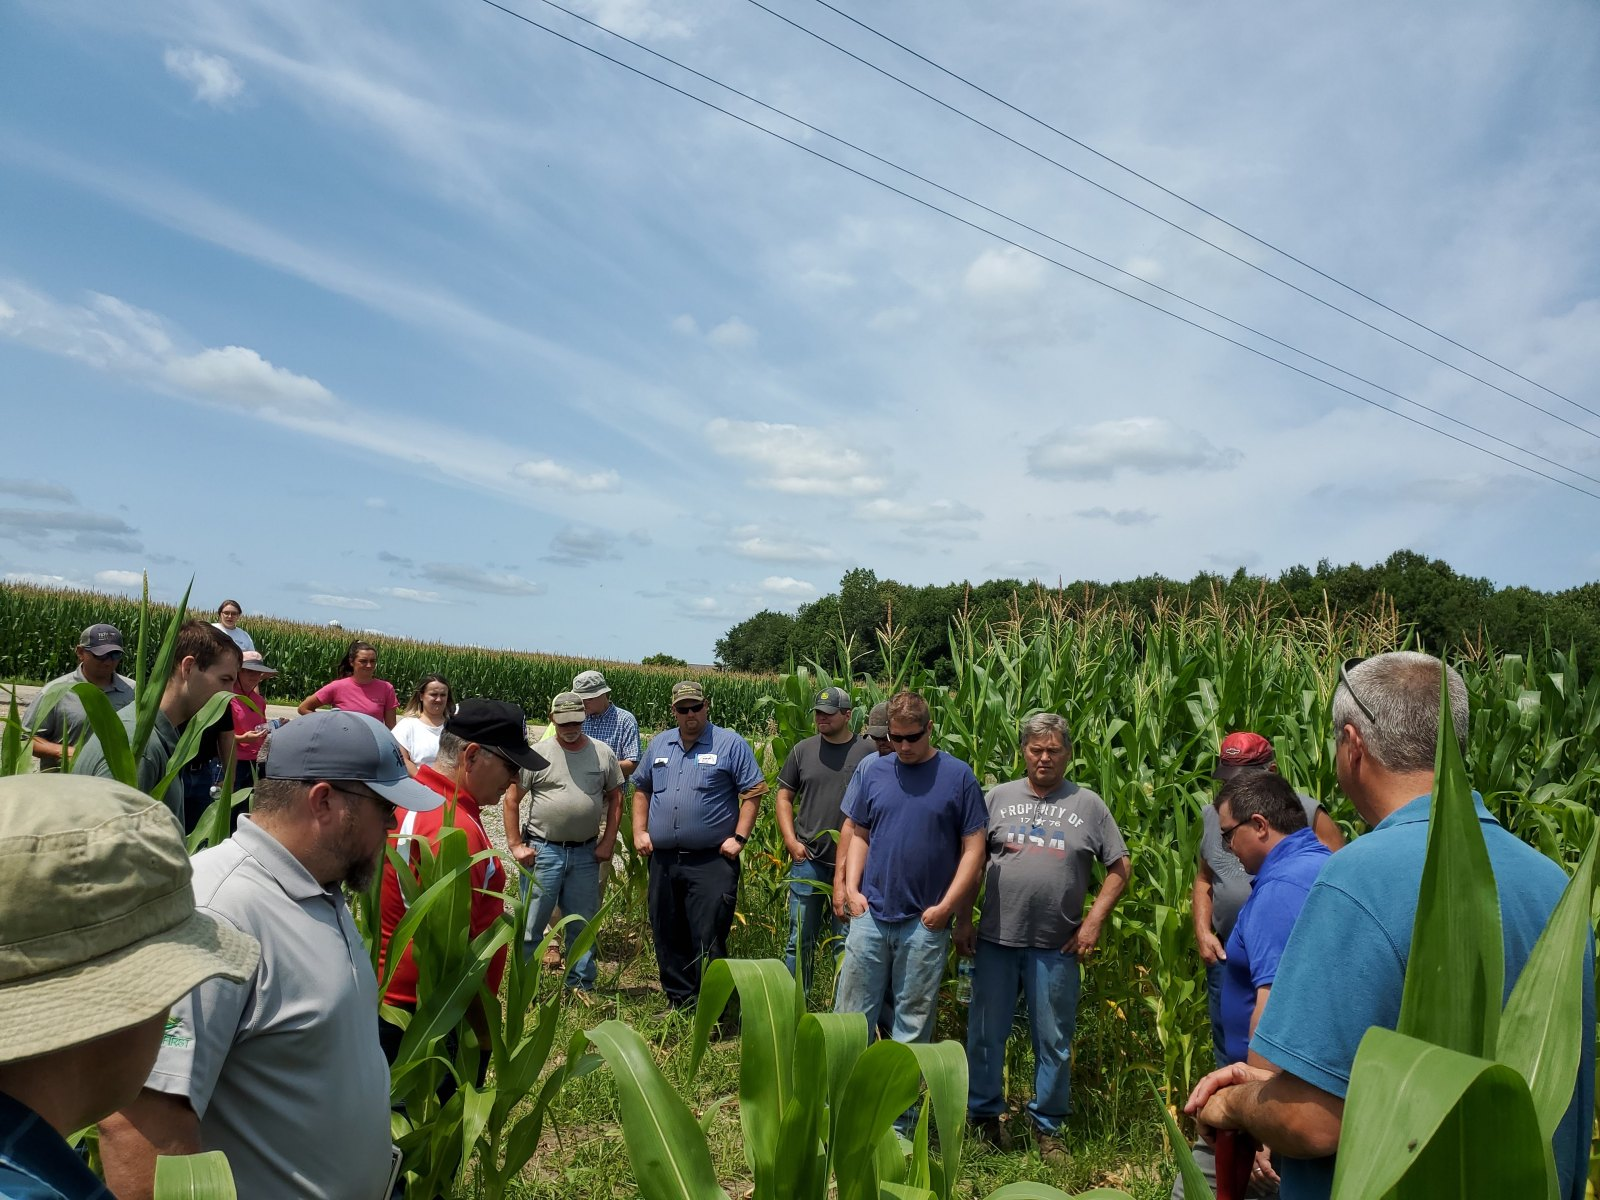 Group discussion on the benefits of interseeding cover crops